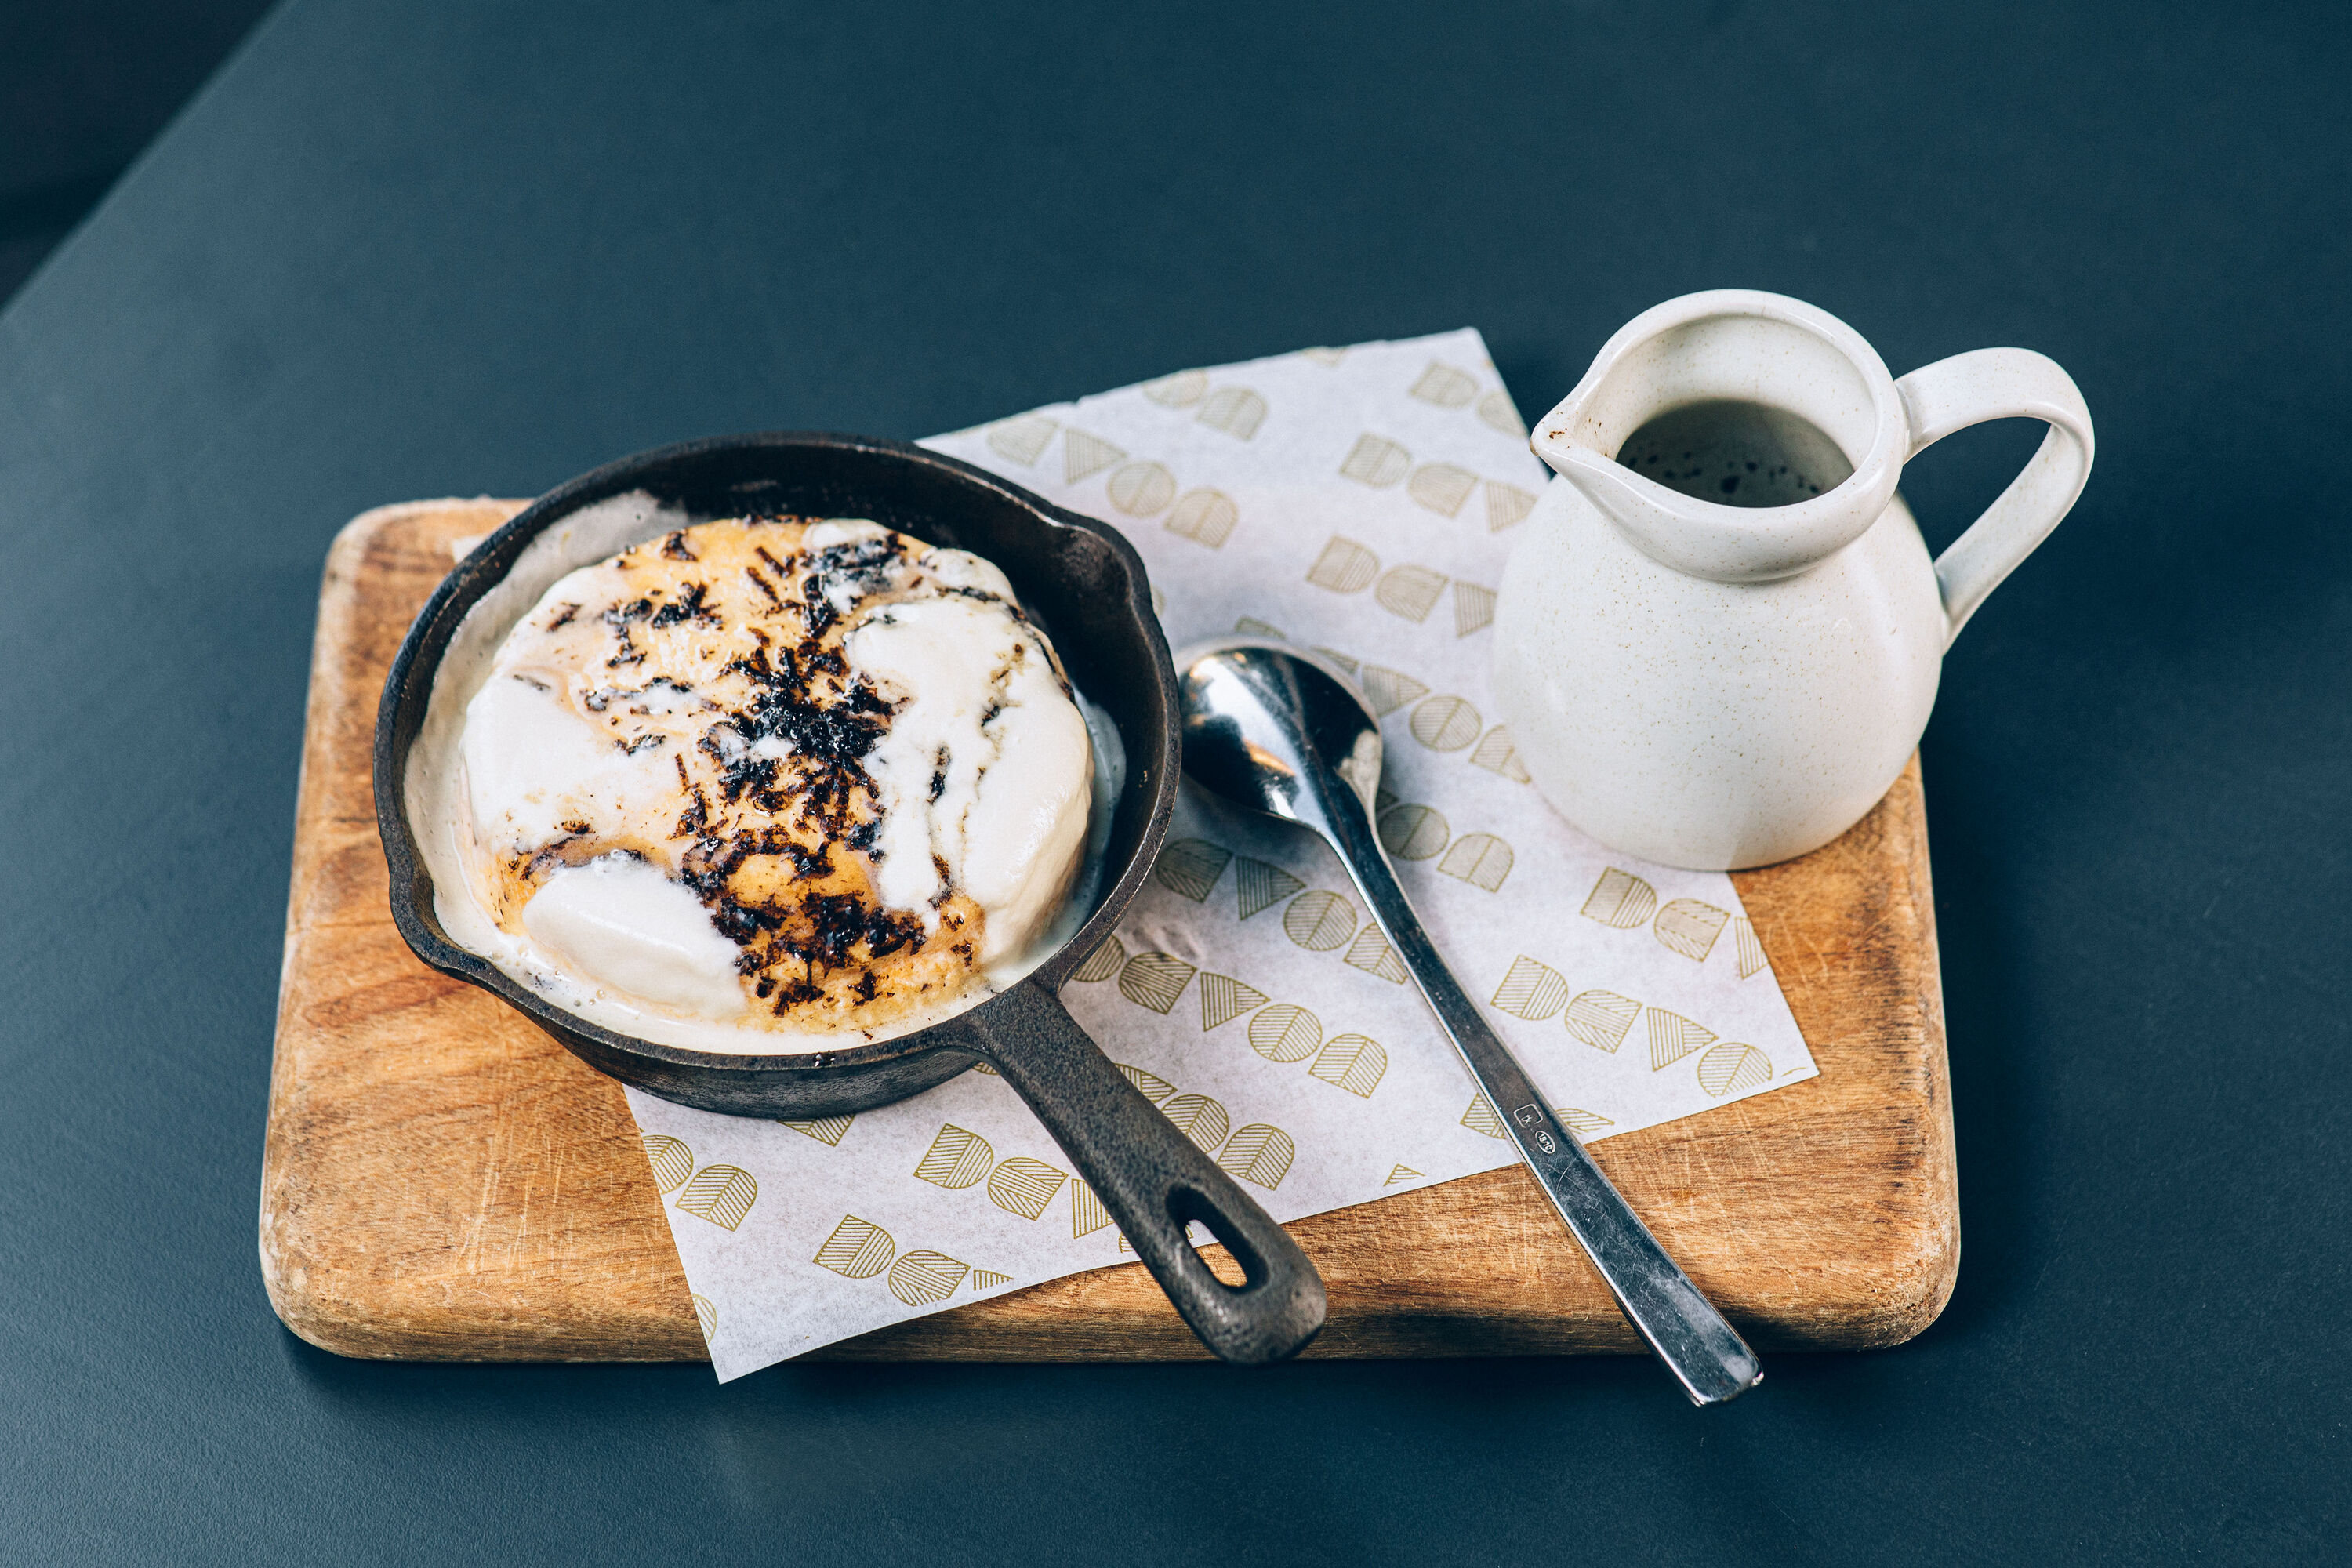 Truffle hotcakes in a pan, presented on a wooden chopping board with jug of sauce